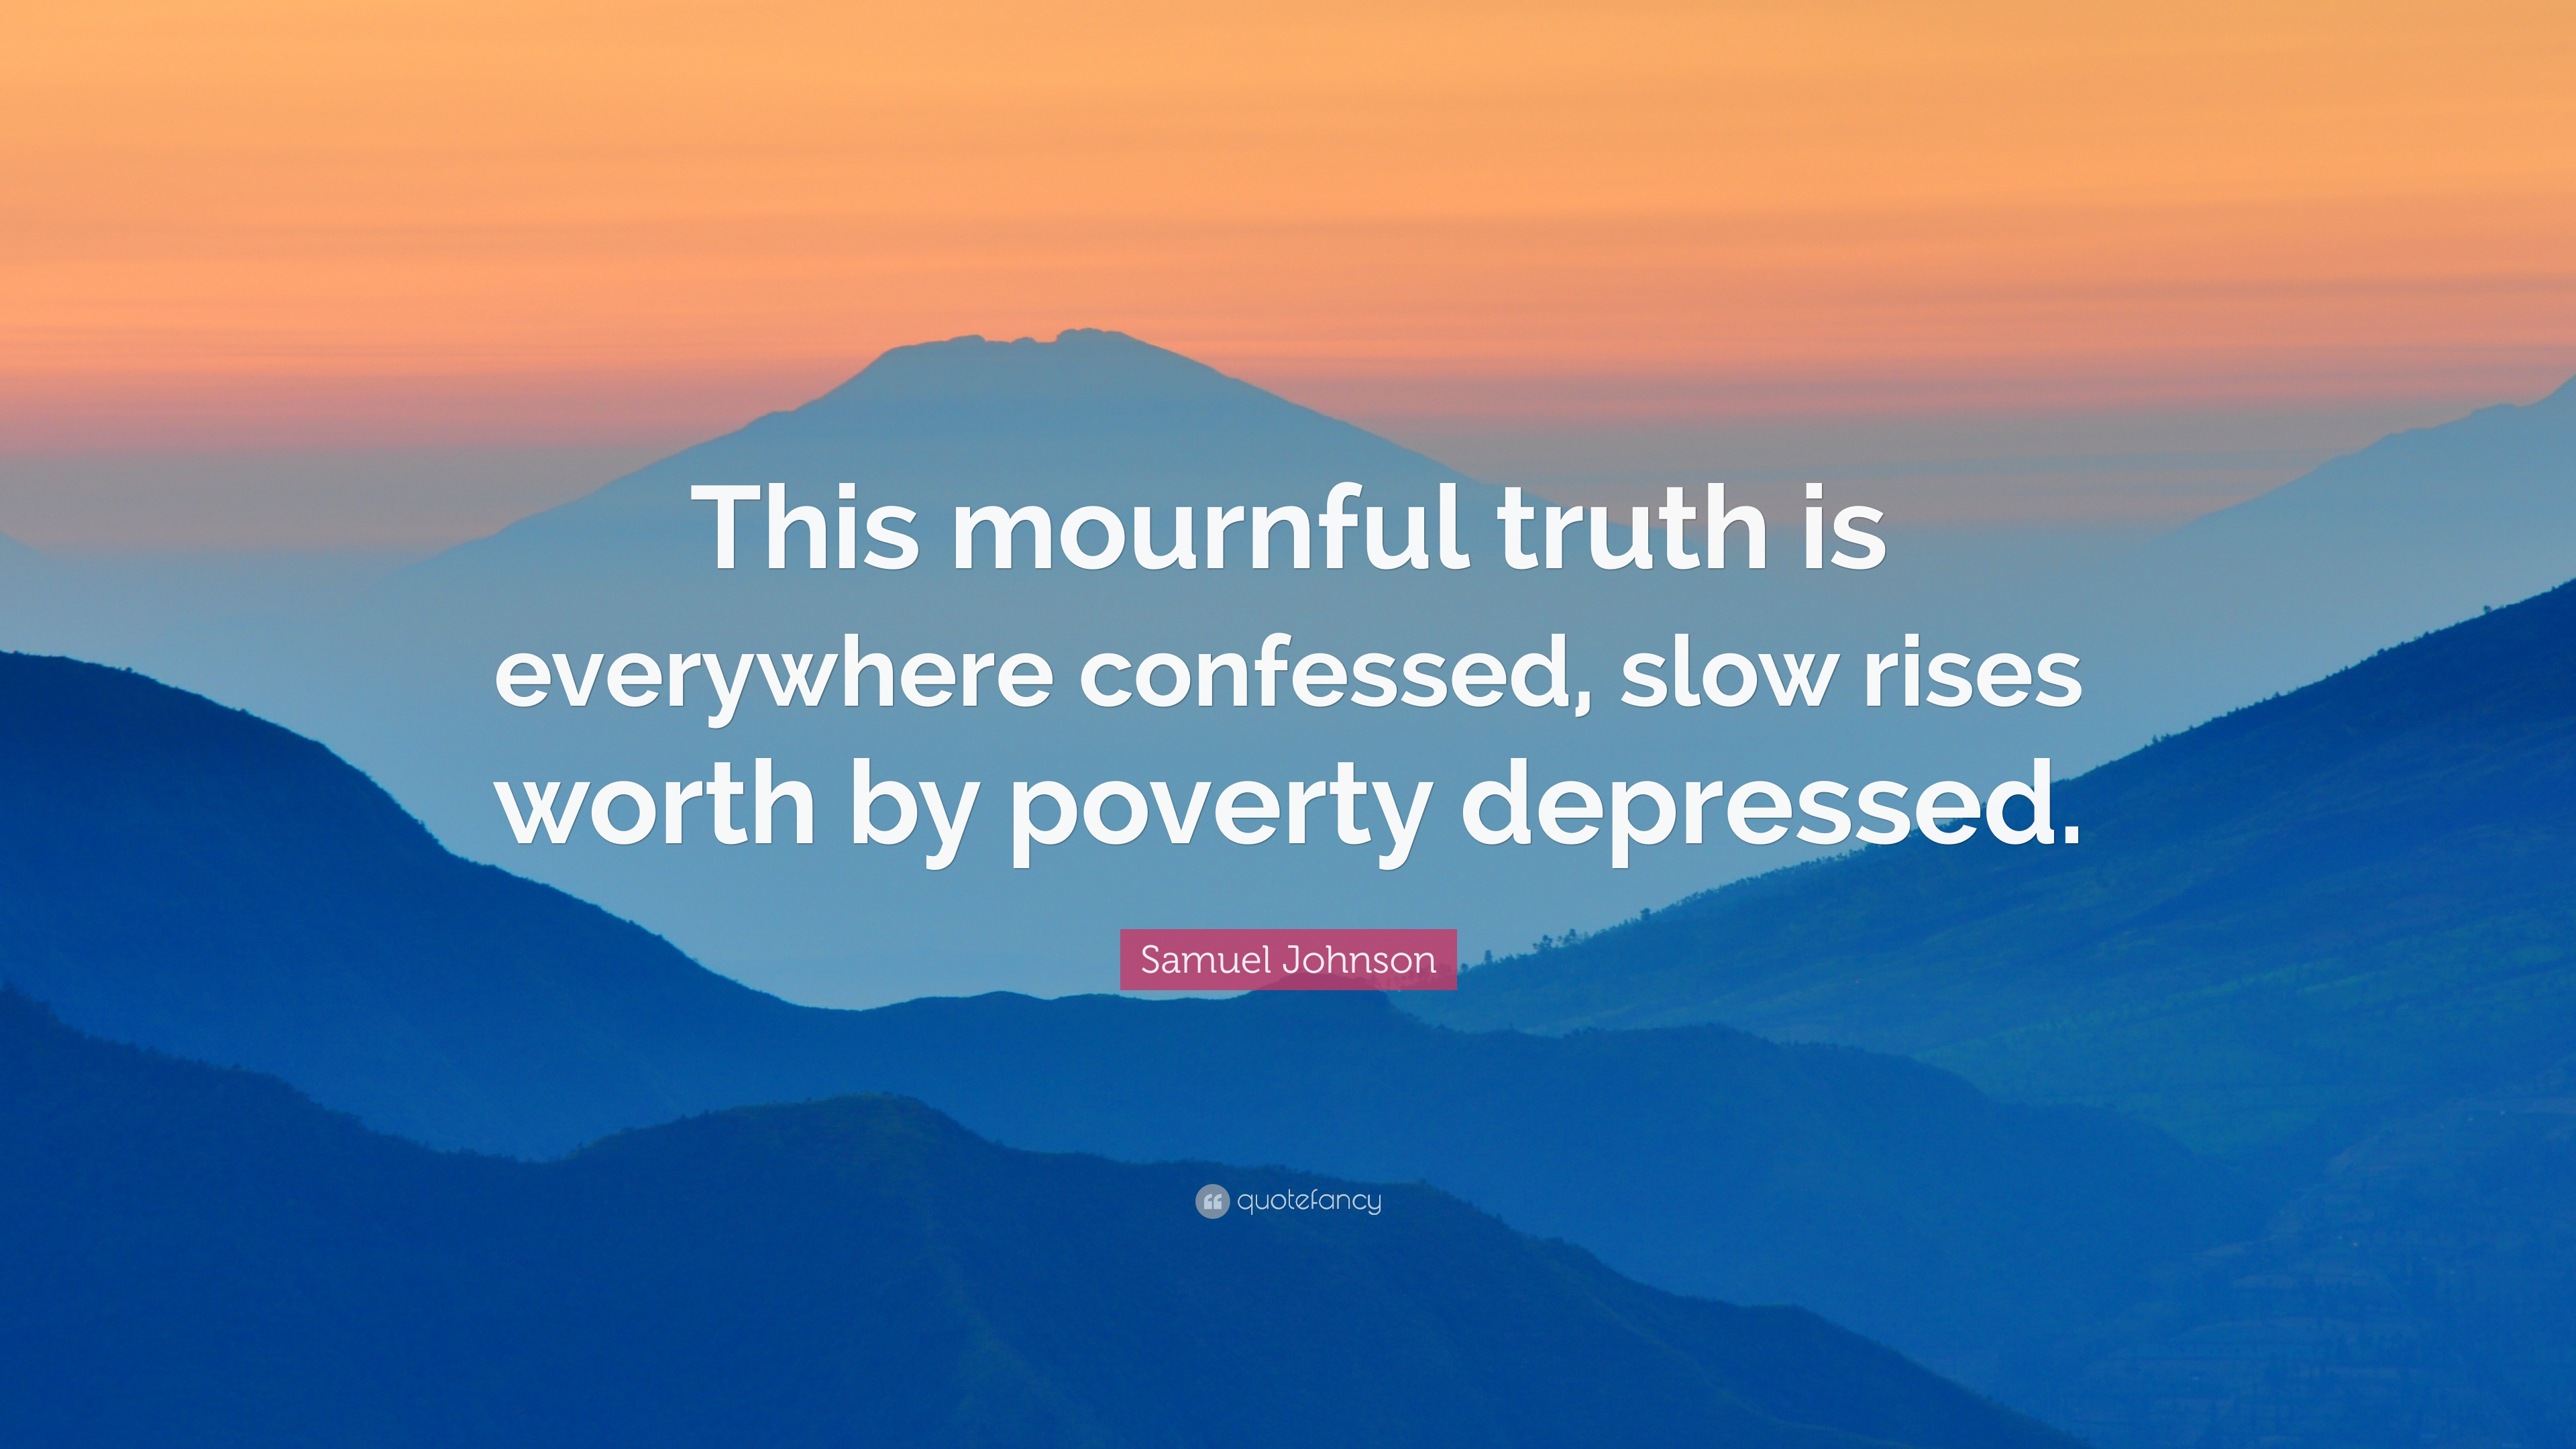 slow rises worth by poverty depressed